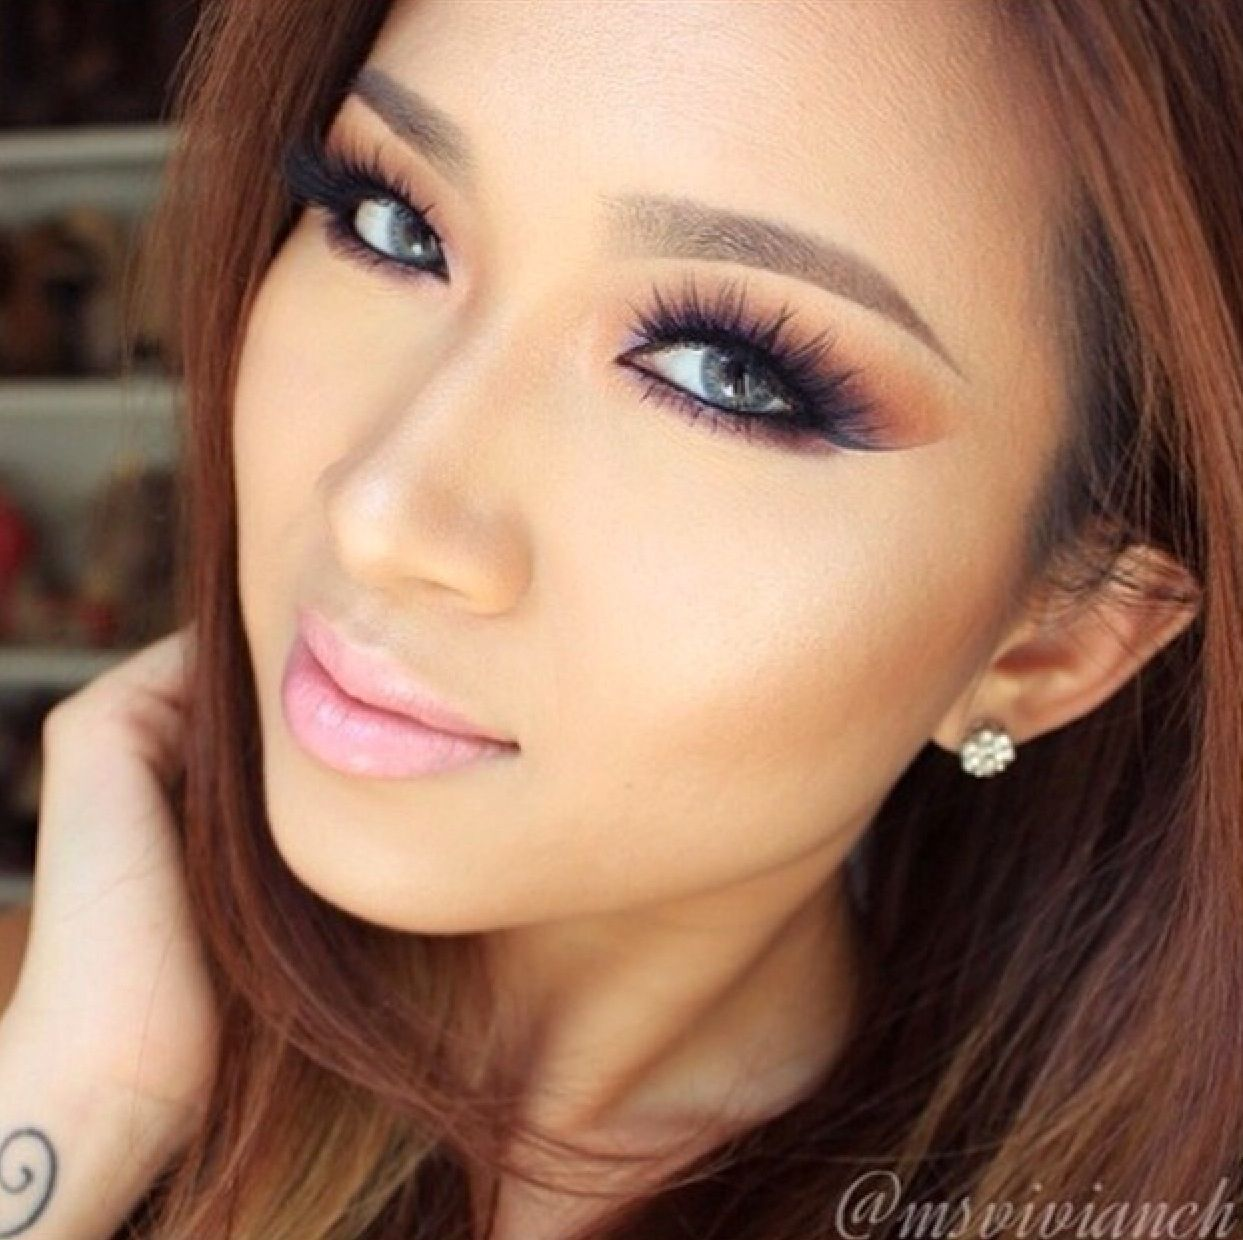 Pin by caitlin johnson on Makeup Iconic lashes, Smile